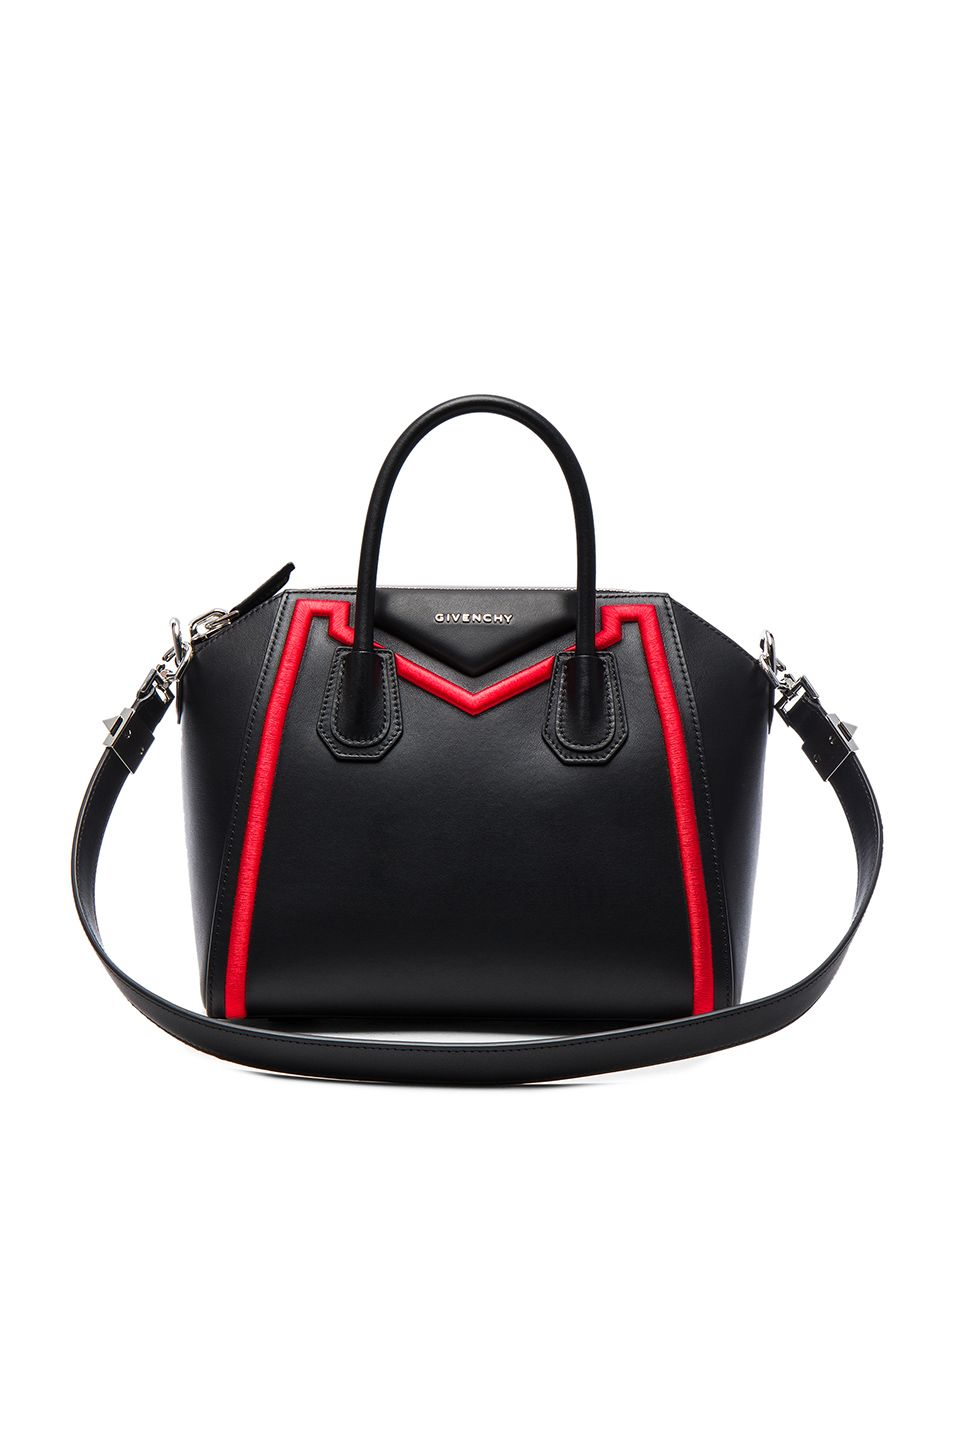 59957b46d1b8 GIVENCHY Small Embroidered Frame Antigona.  givenchy  bags  shoulder bags   hand bags  canvas  leather  lining